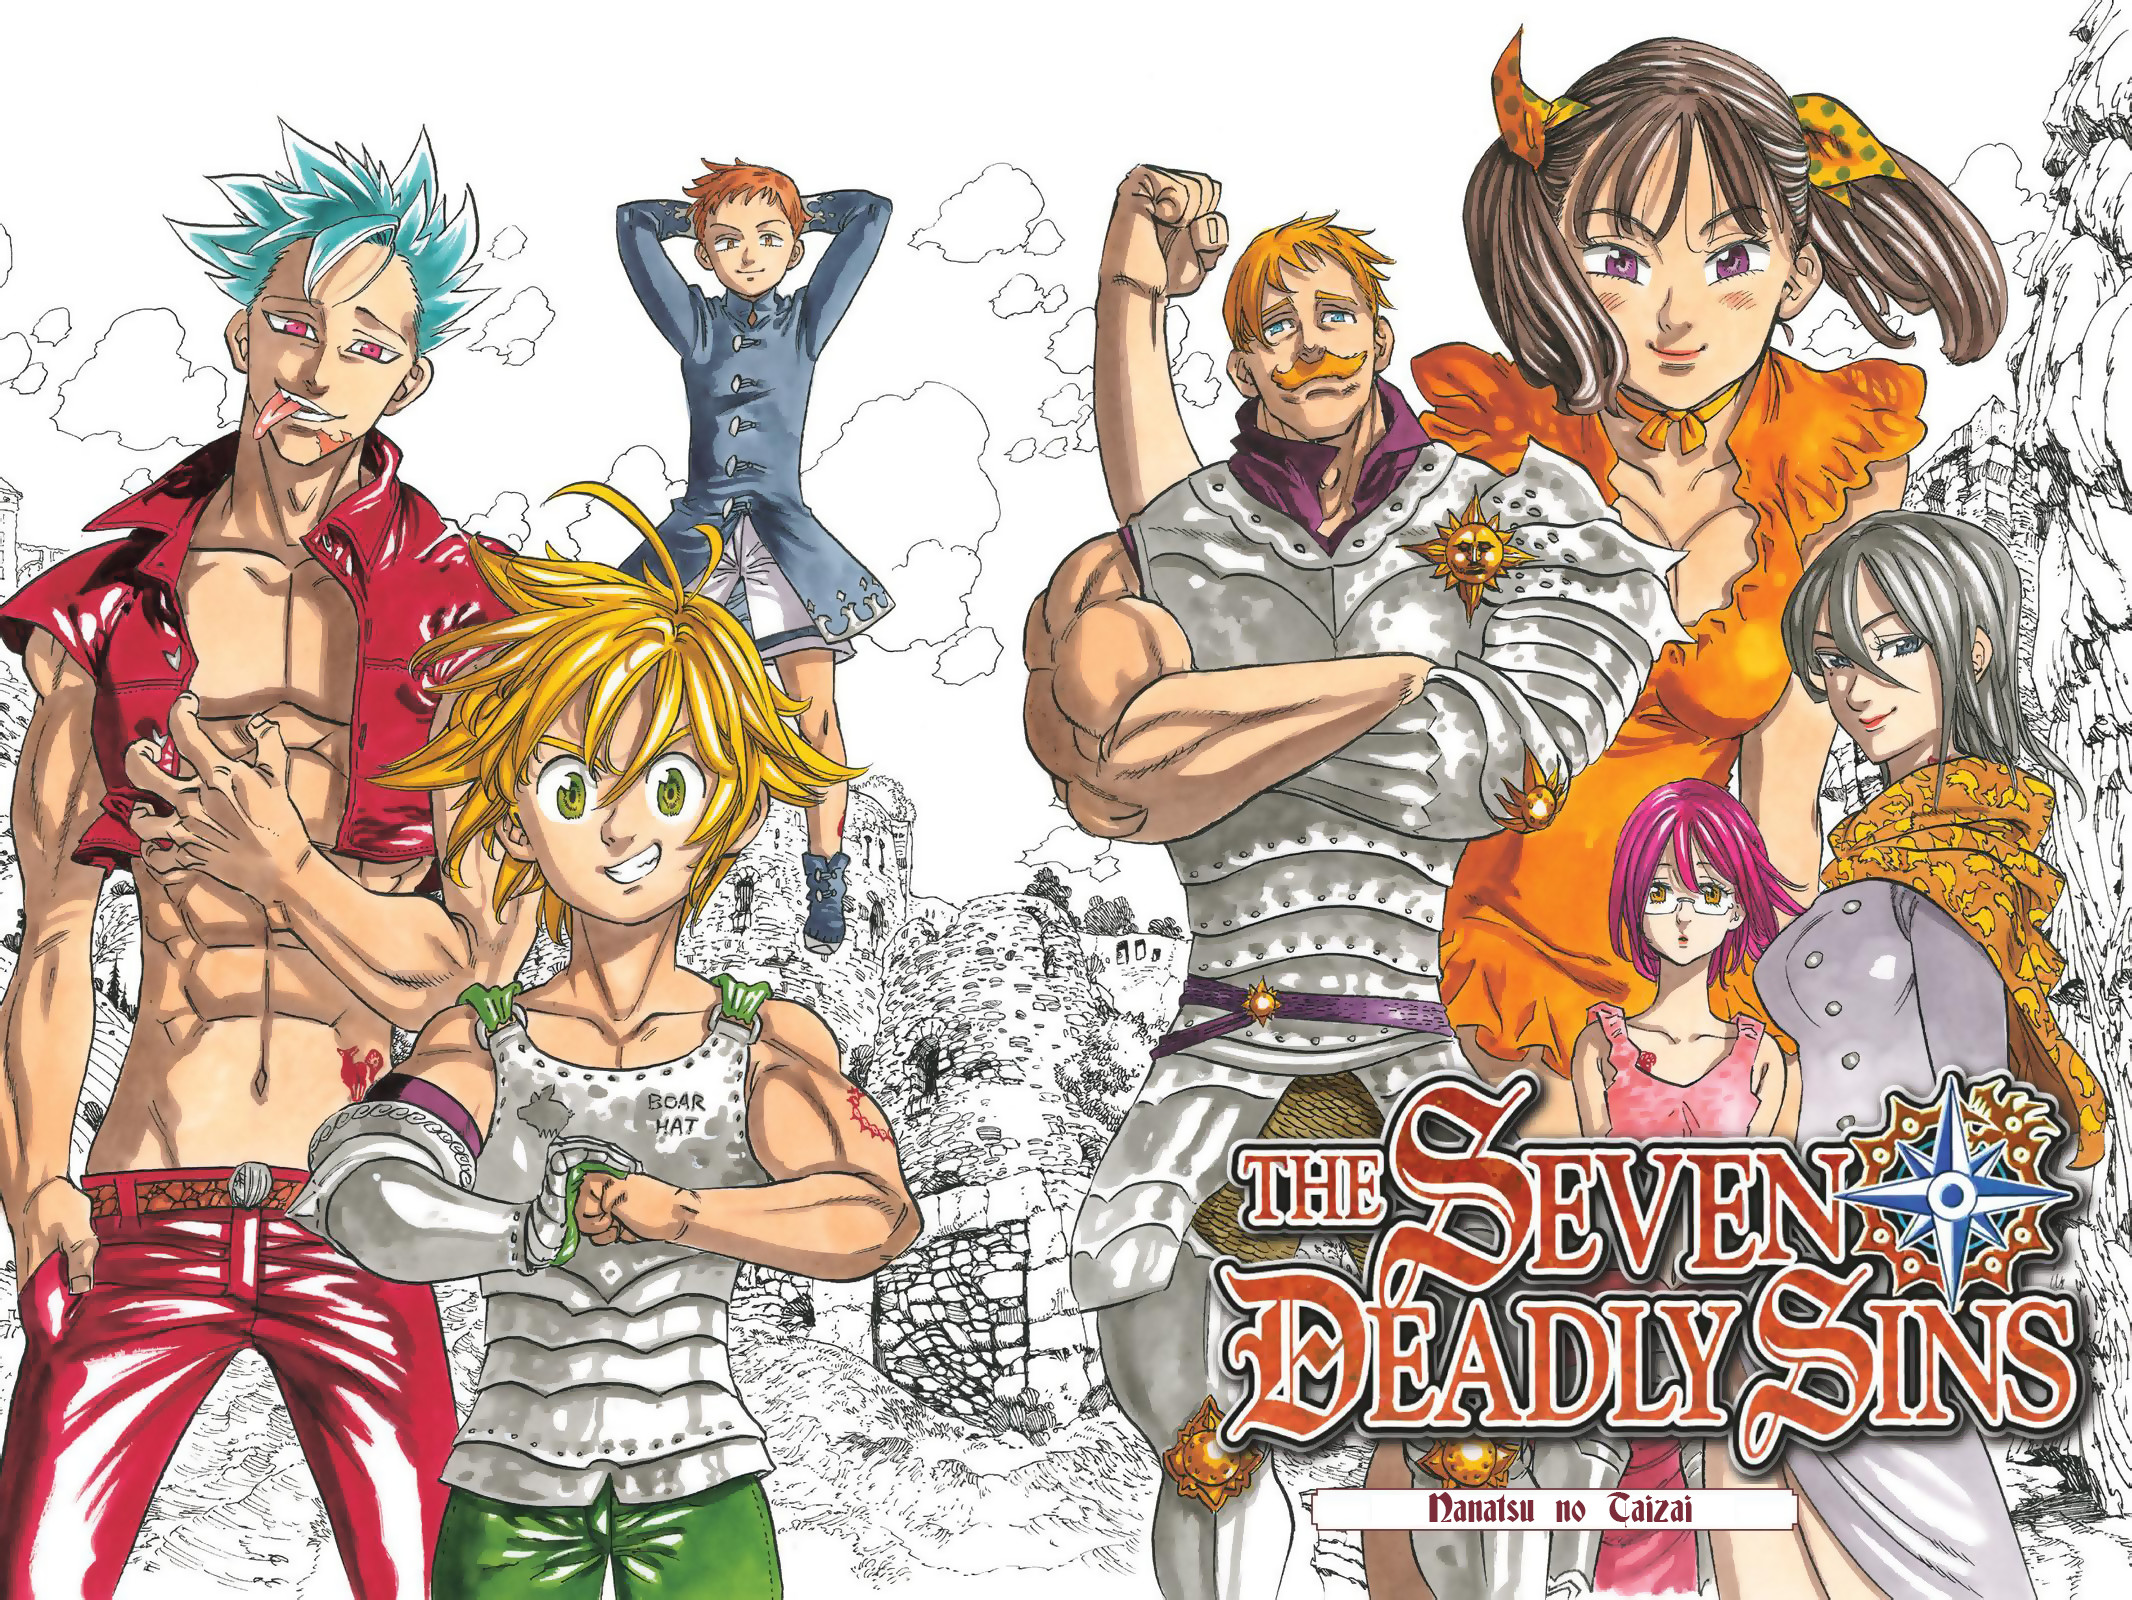 2132x1600 Anime - The Seven Deadly Sins Manga Merlin (The Seven Deadly Sins) Diane (